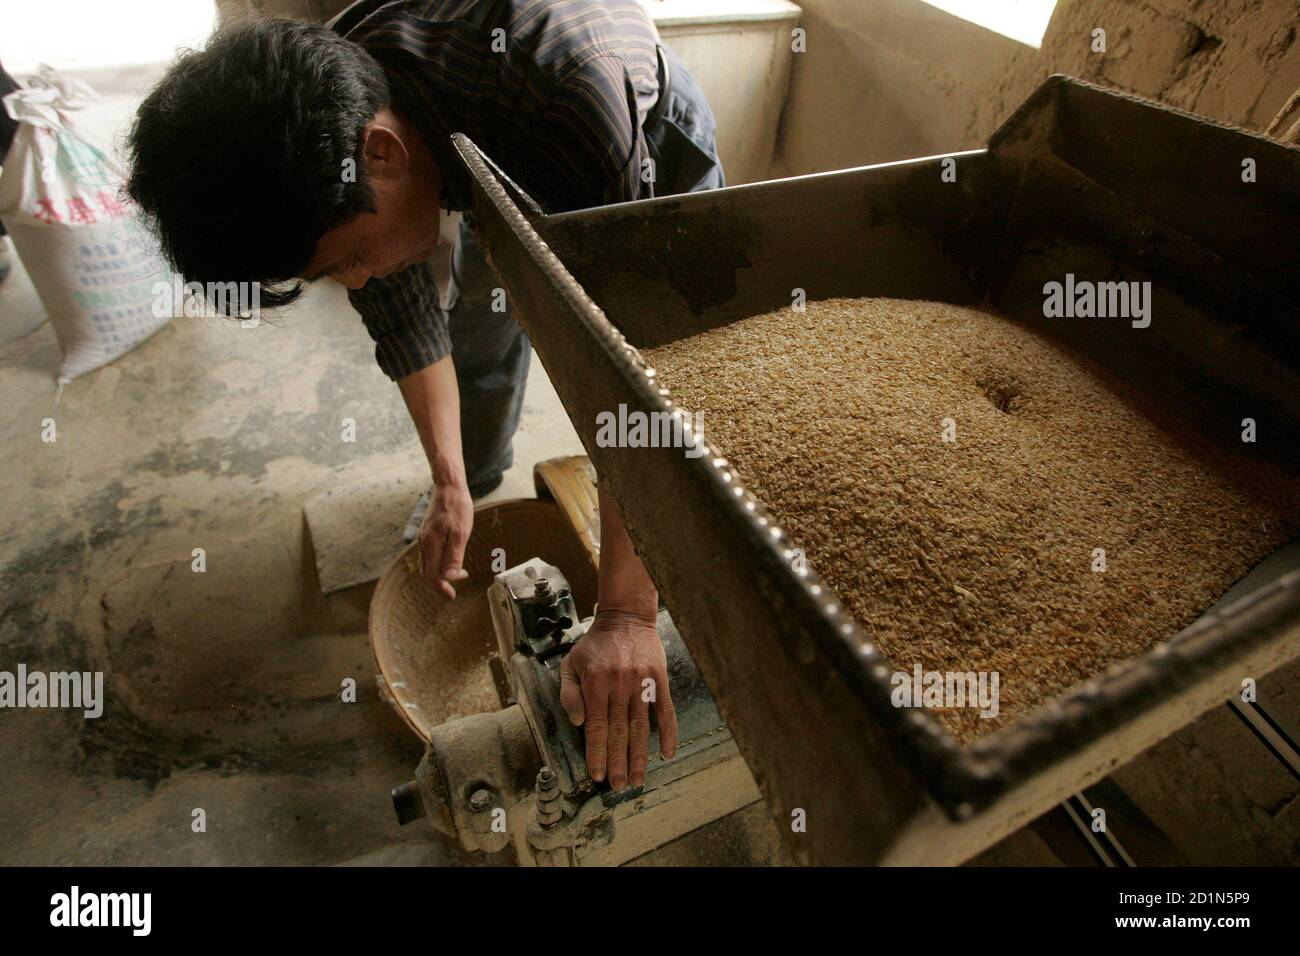 A farmer removes husks from rice in Nanhui district on the outskirts of Shanghai April 7, 2008. China will offer farmers more favourable treatment to encourage them to sow crops so as to guarantee grain reserves and ease inflationary pressures, Premier Wen Jiabao said in comments published on Sunday. REUTERS/Aly Song (CHINA) Stock Photo